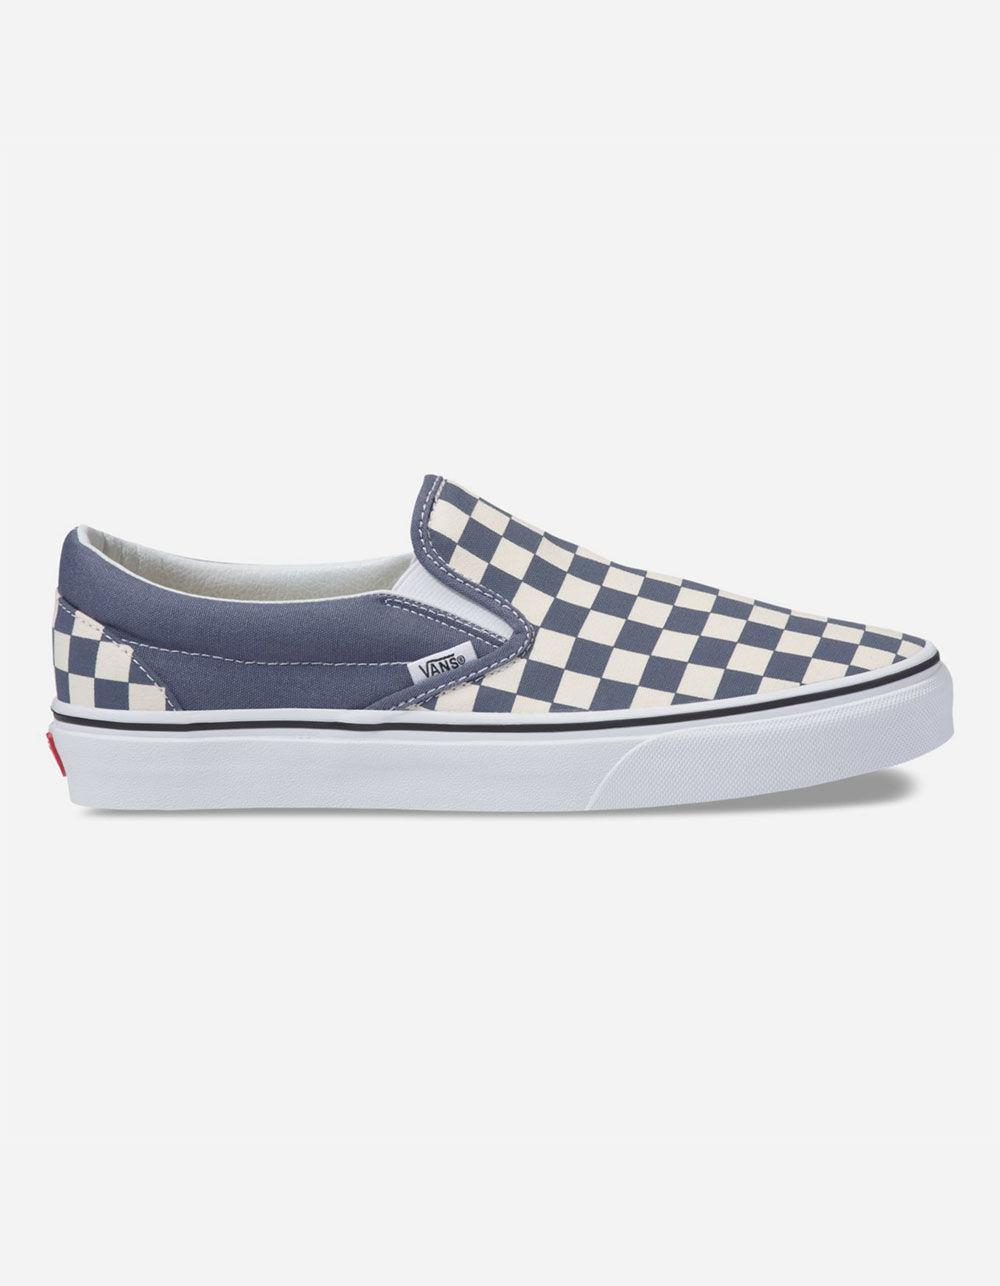 Vans - Checkerboard Grisaille   True White Classic Slip-on Shoes for Men -  Lyst. View fullscreen af6b41056